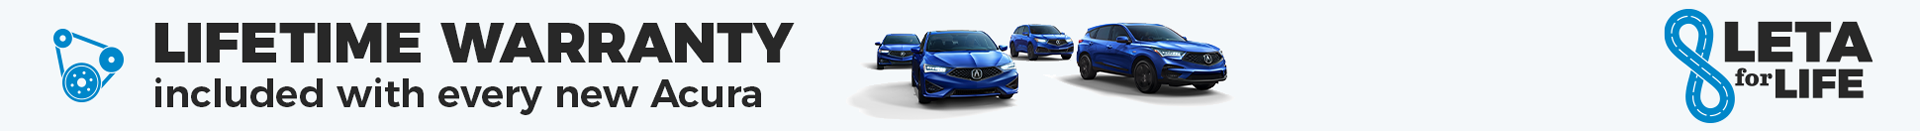 Lifetime warranty on every new Acura with LETA for LIFE